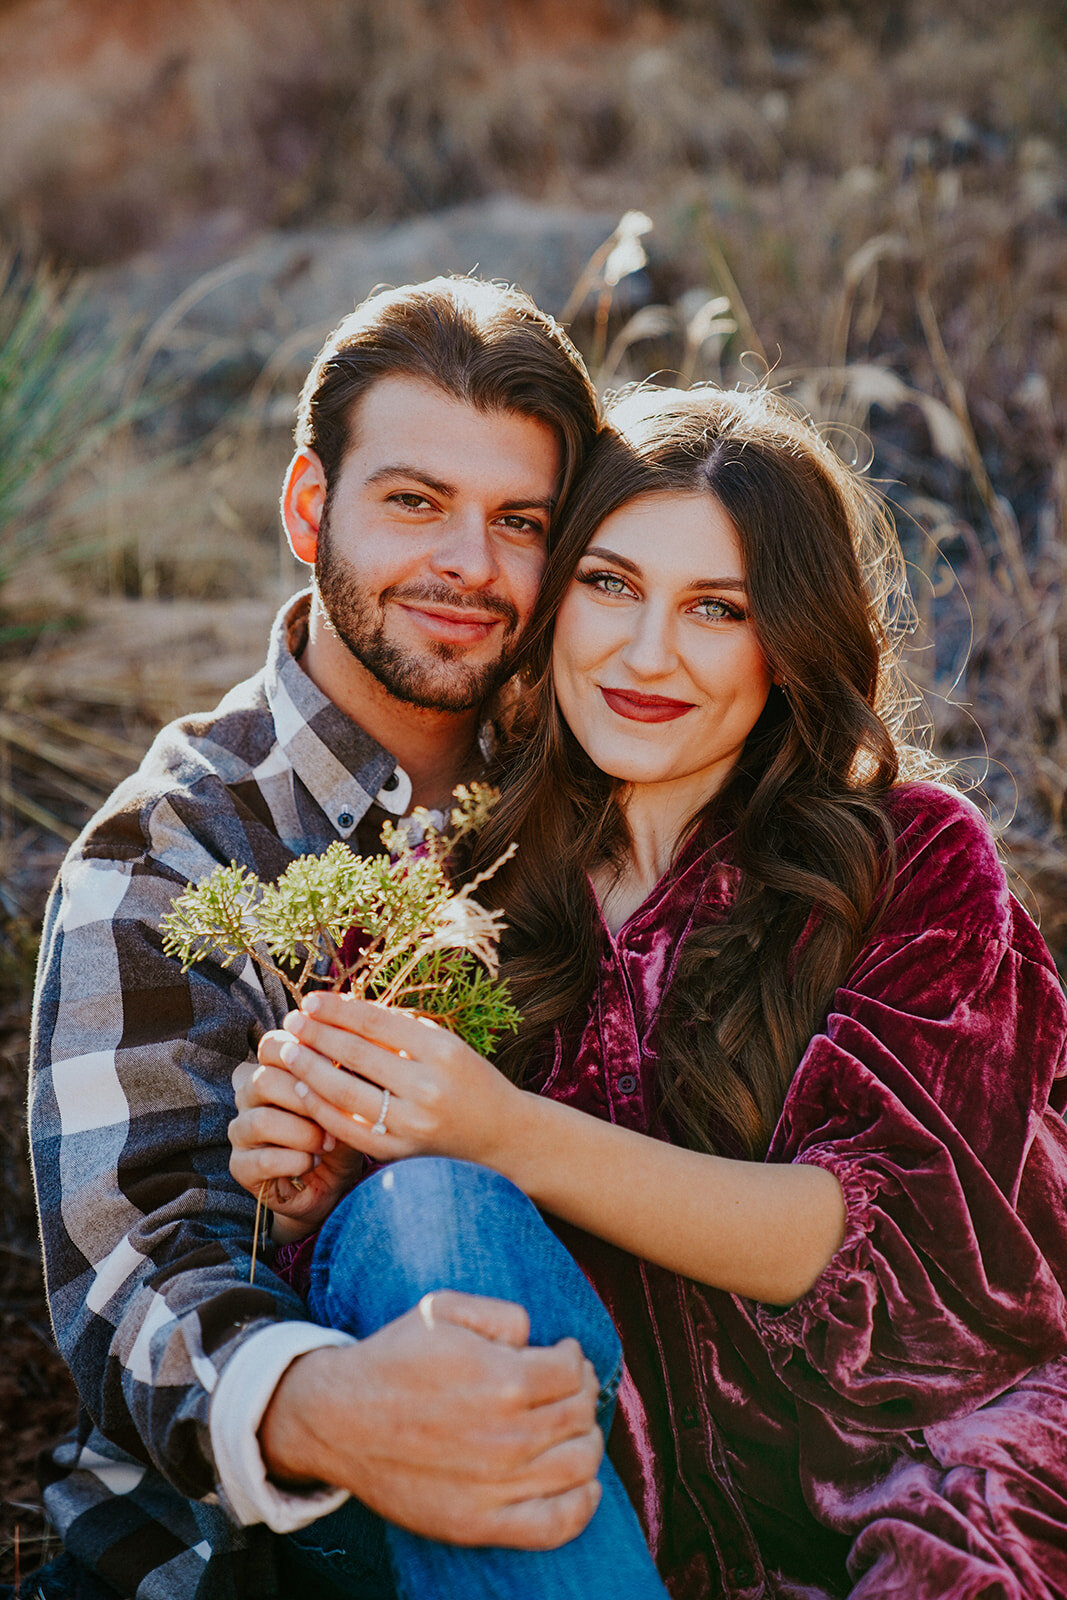 Madison_and_Colton_2020_Canyon_and_Pine_PaloDuro_-14